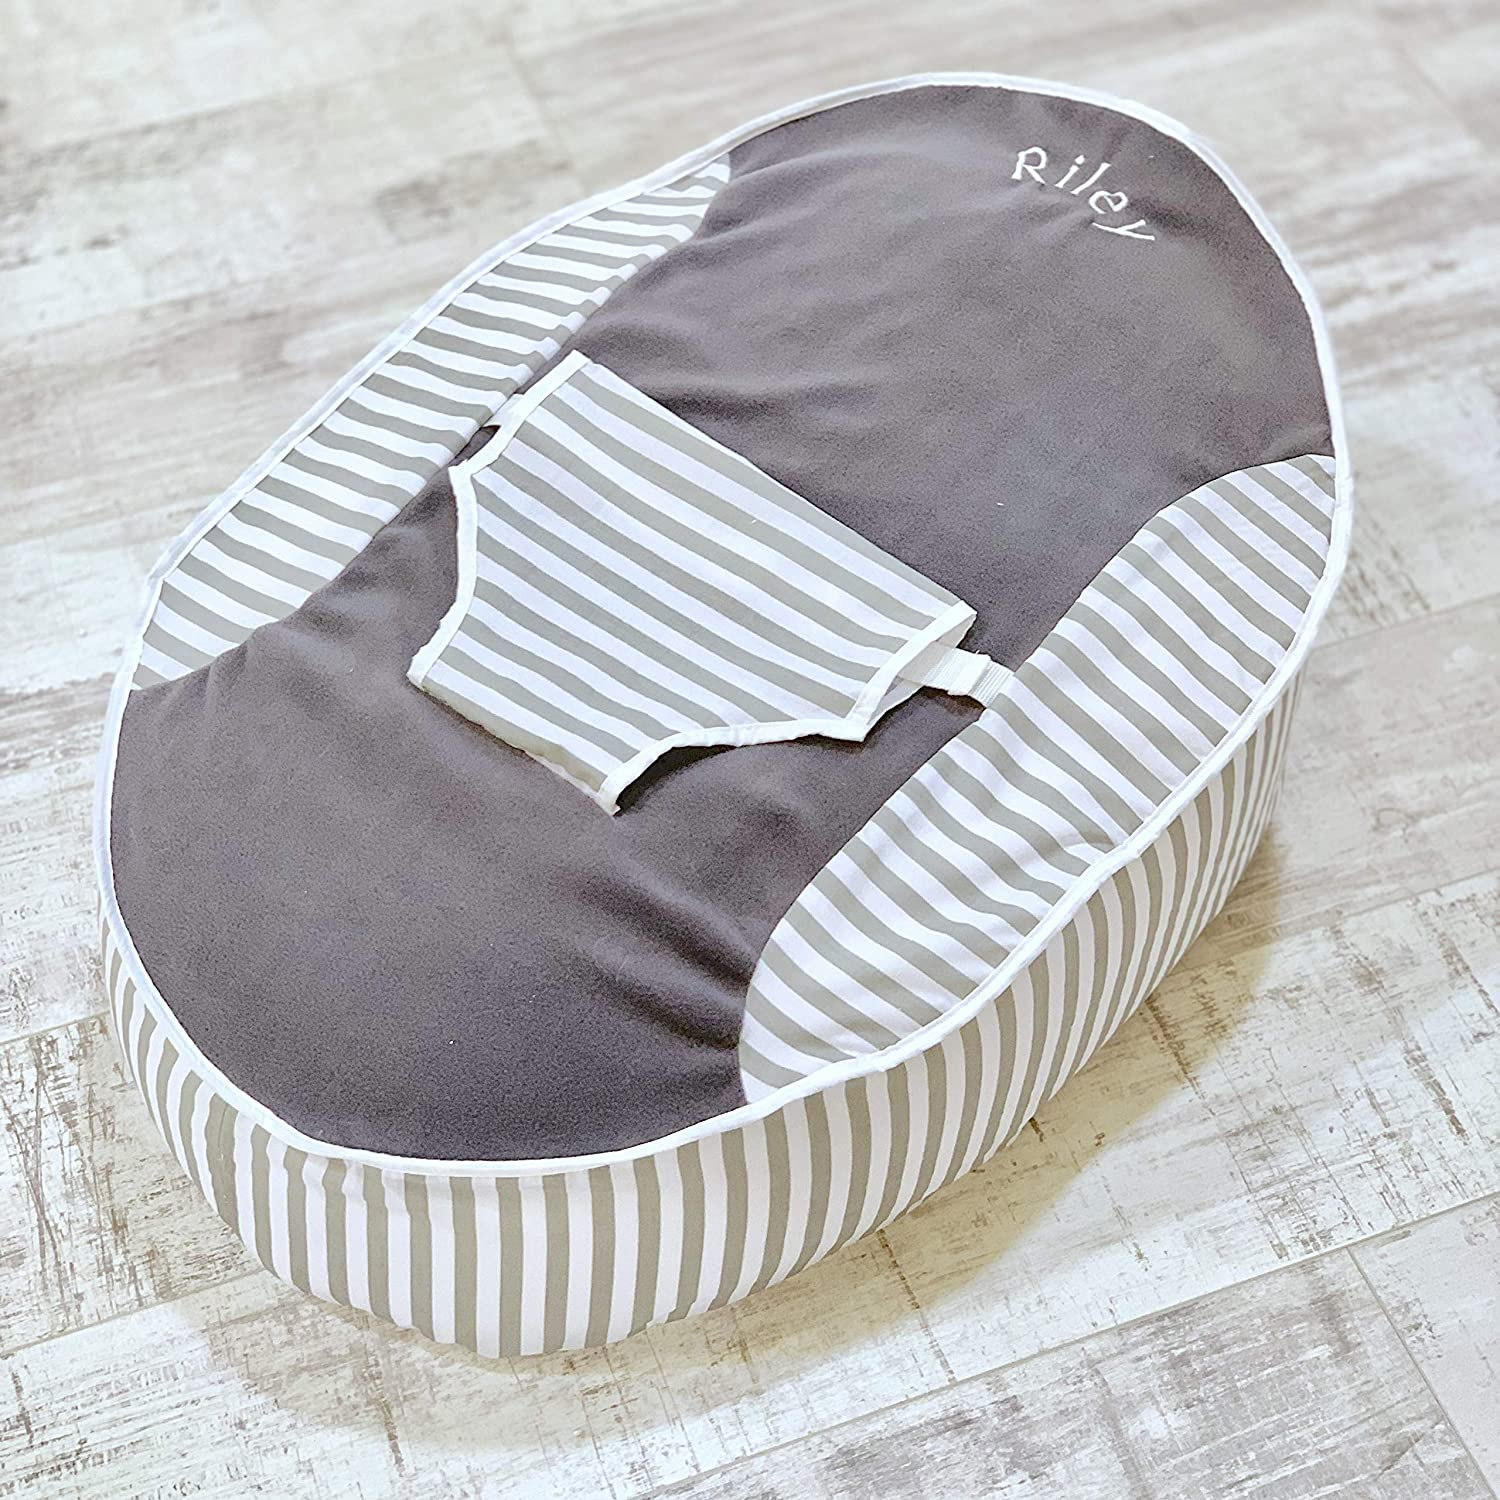 Personalised PRE Filled Baby Bean Bag Chair SEAT Newborn Boys Newborn Next Day Dispatch